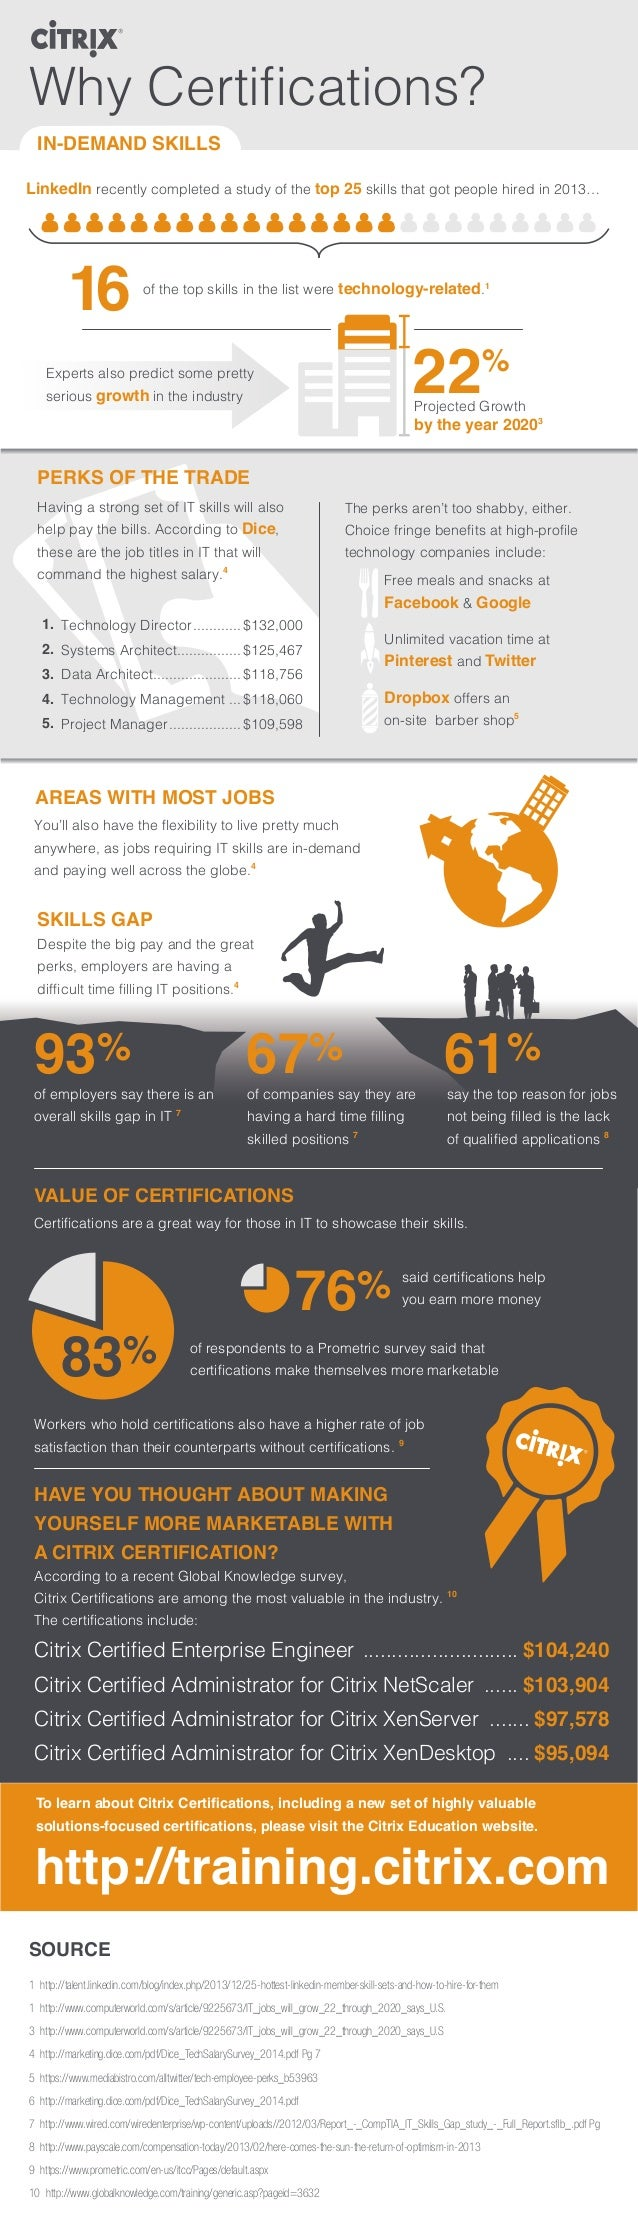 Citrix: Why Certifications? [Infographic]